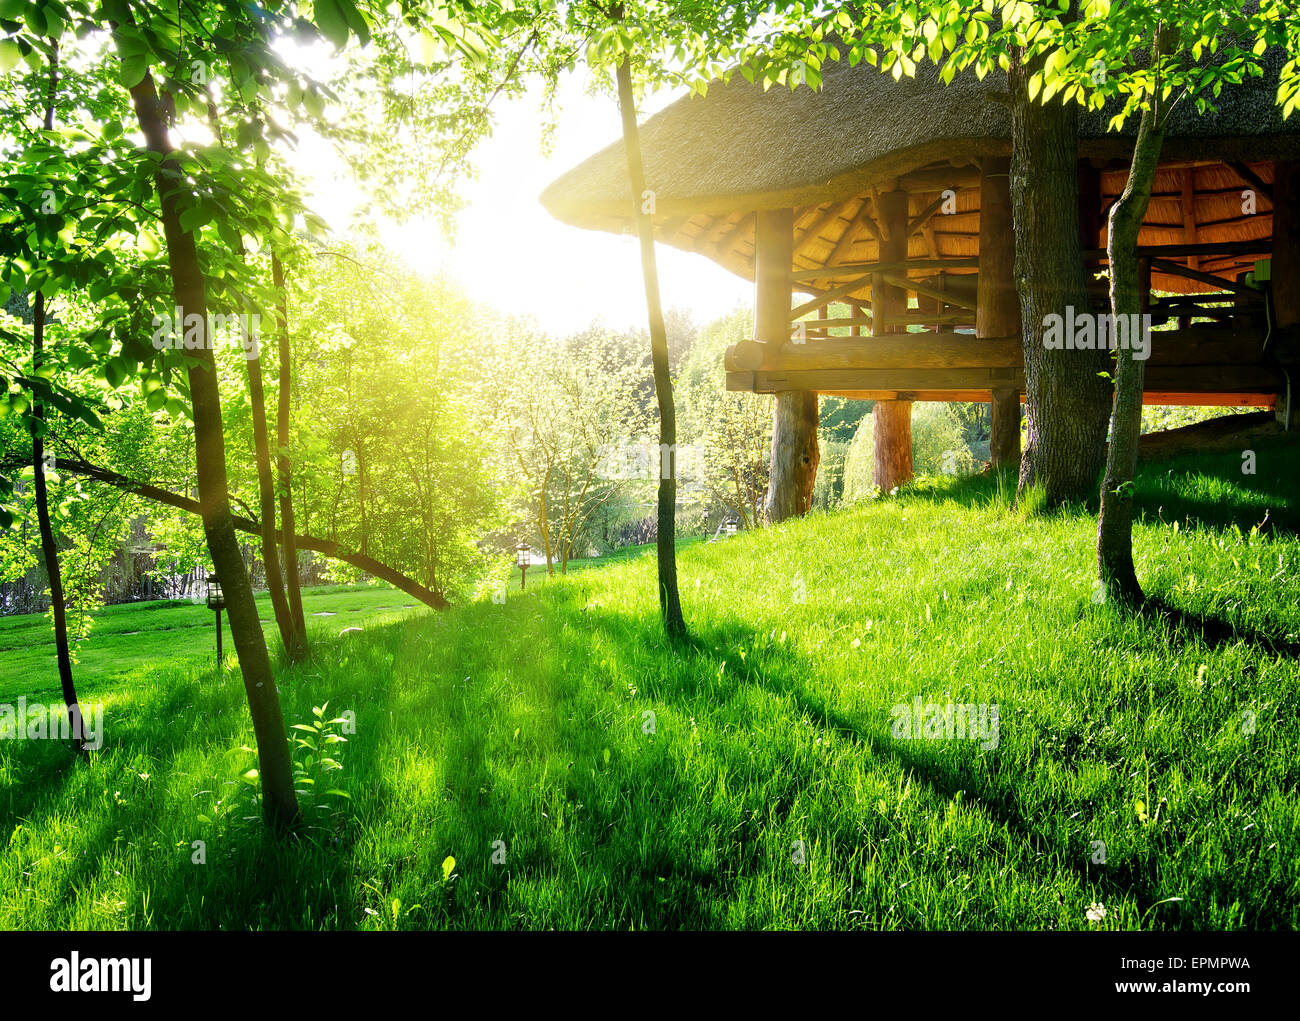 Gazebo among the green trees in sunny day - Stock Image